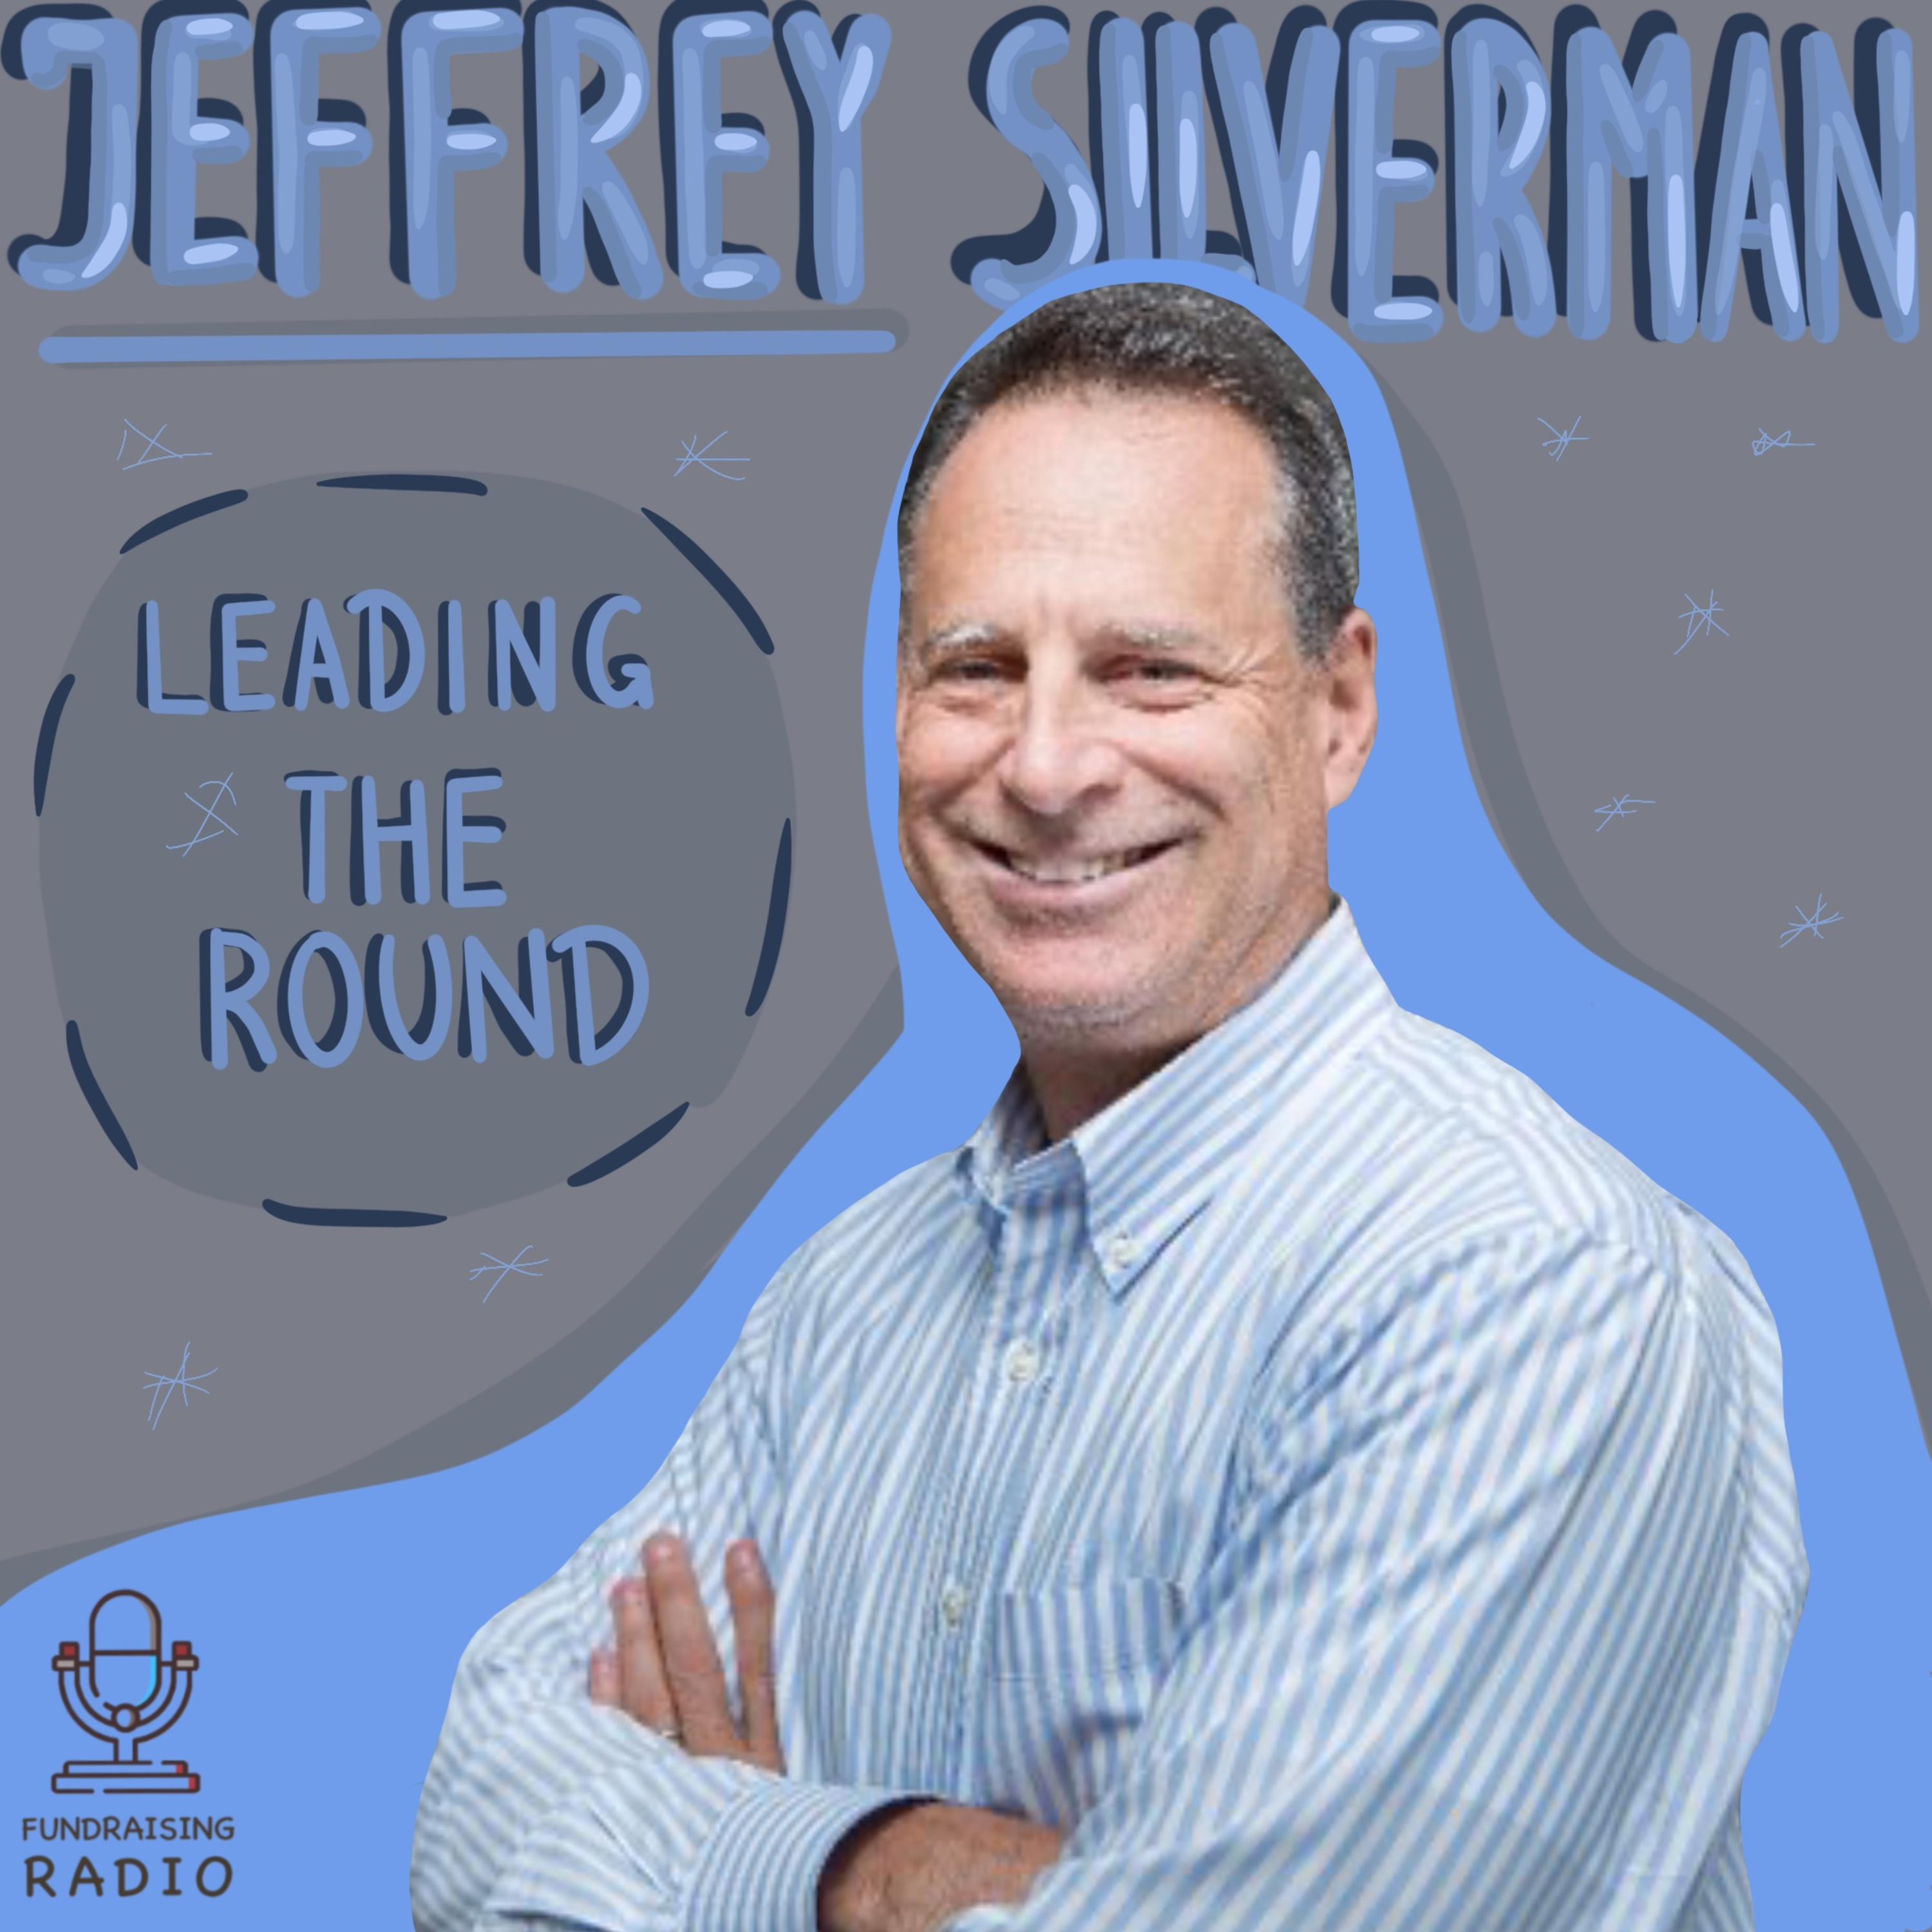 Capital strategies - what is it and how to develop one? By Jeffrey Silverman.